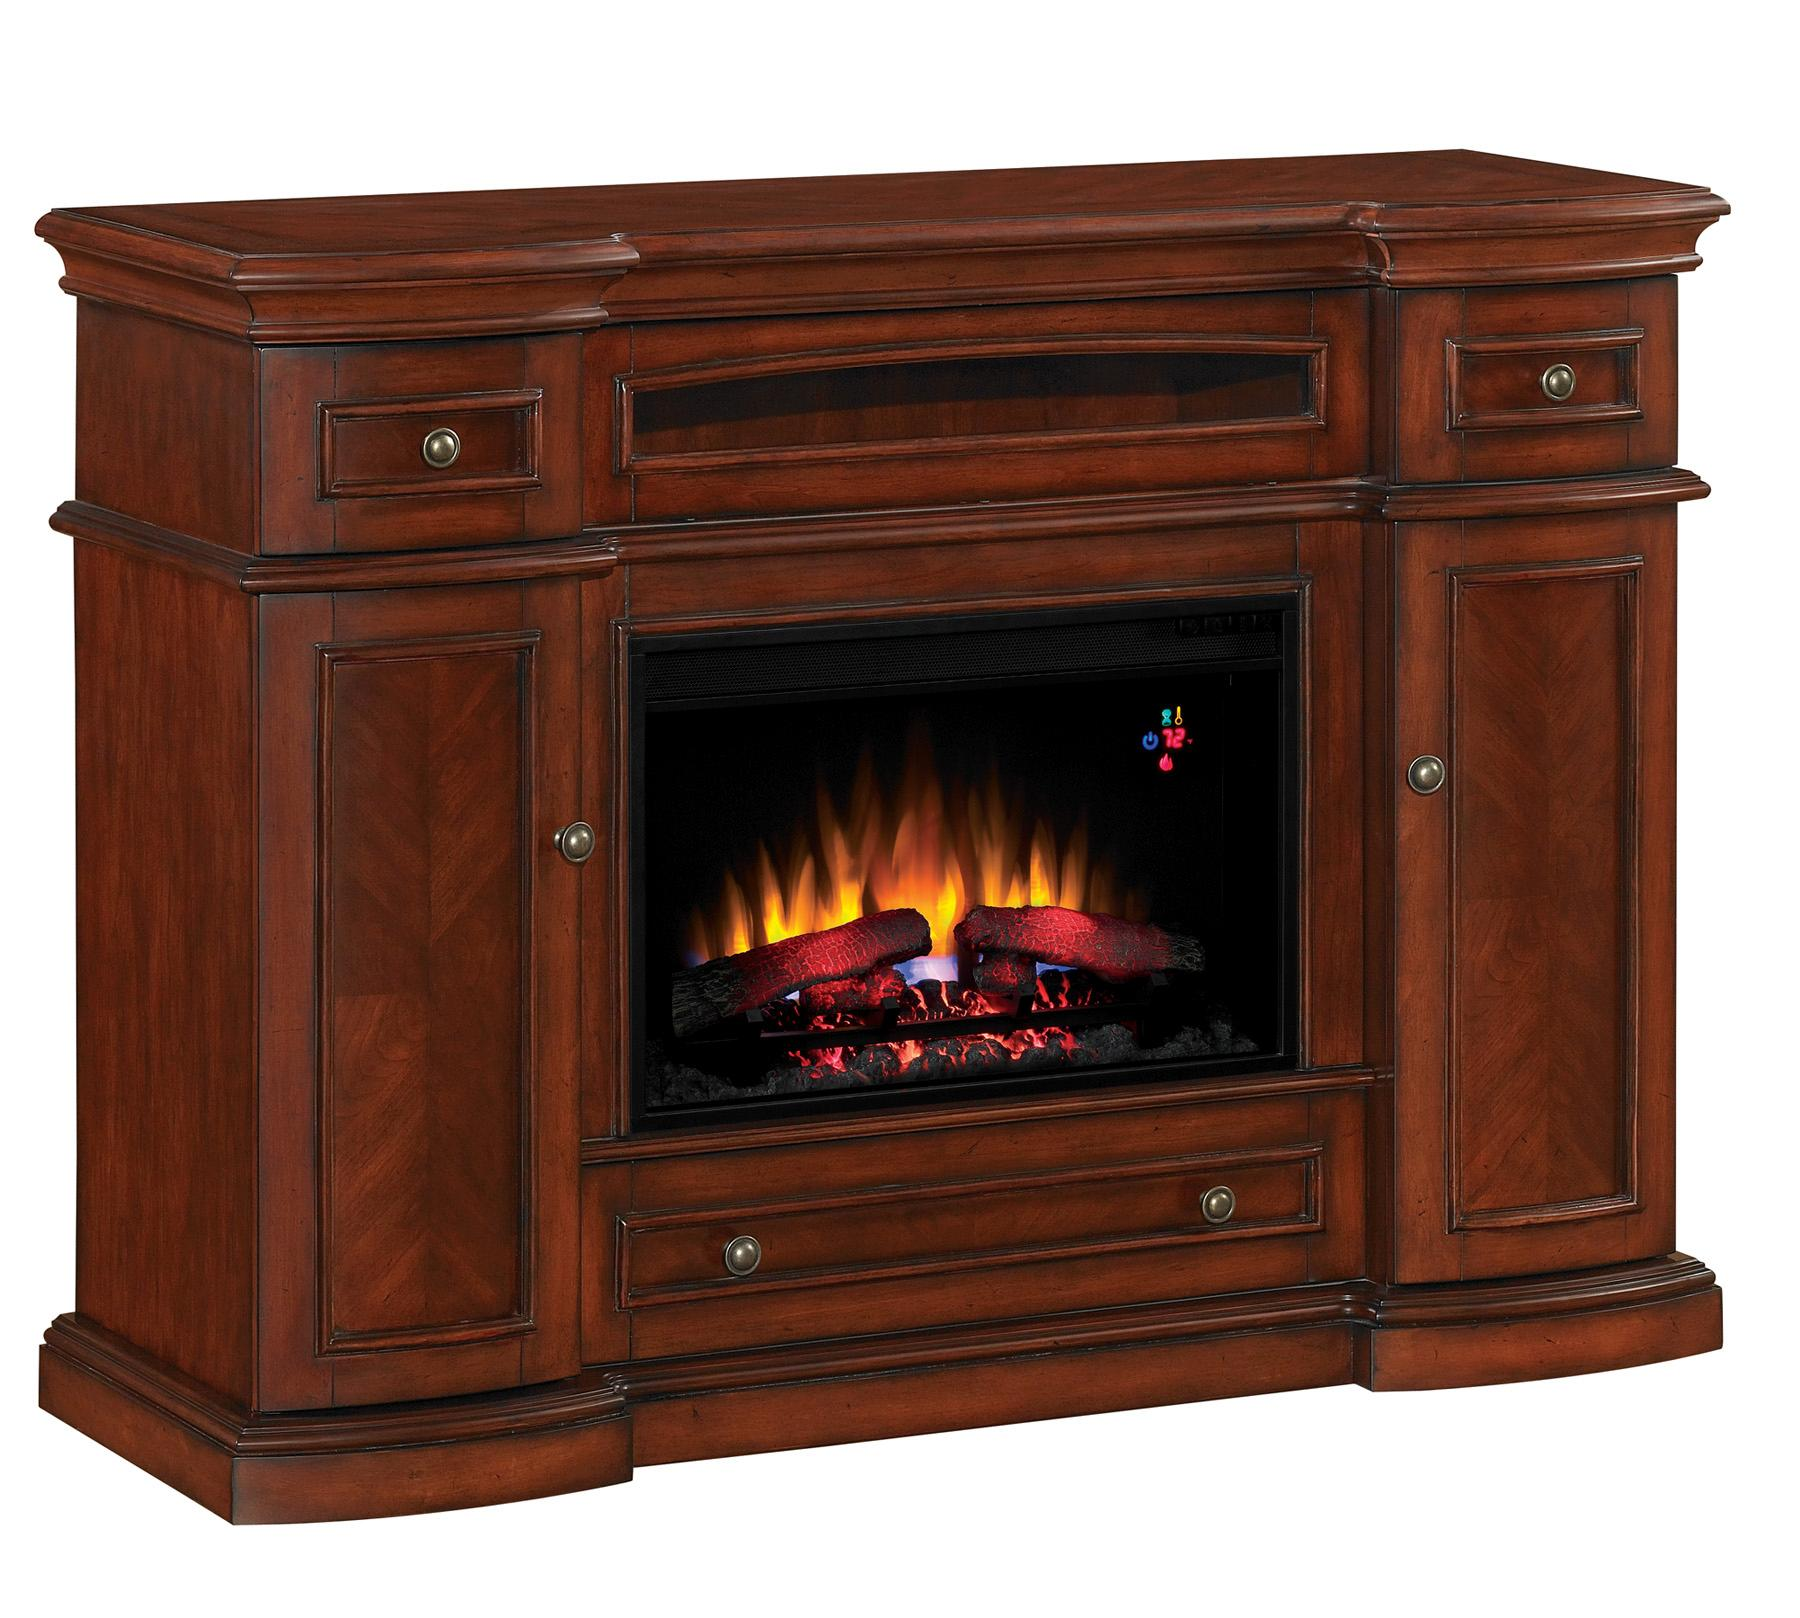 Montgomery 26in electric fireplace and tv stand cherry 26mm2490 c233 - From The Manufacturer Product 26mm2490 C233